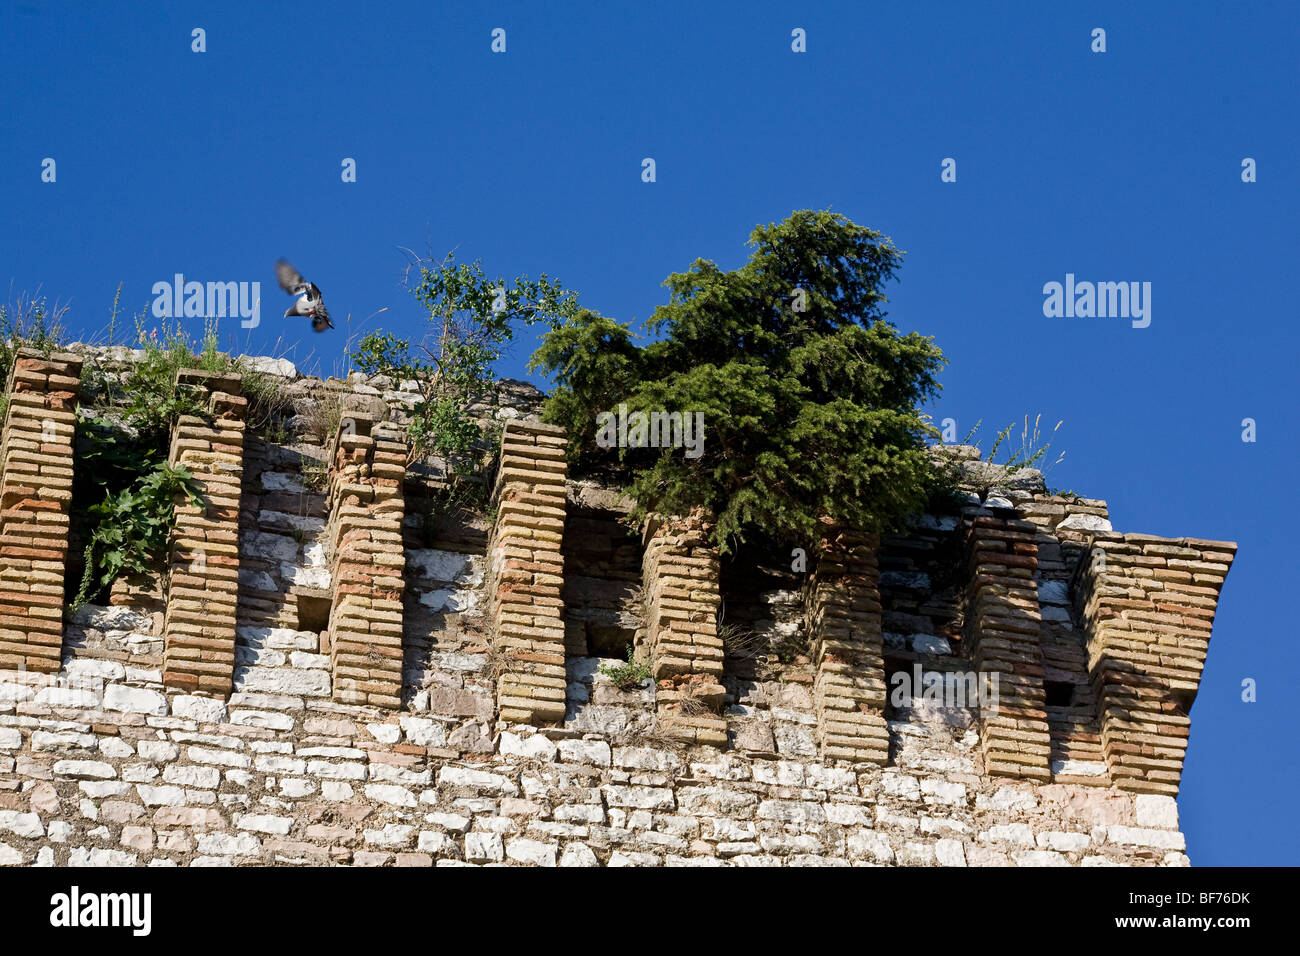 A bird planes over an ancient medieval italic tower in Spello, Italy - Stock Image